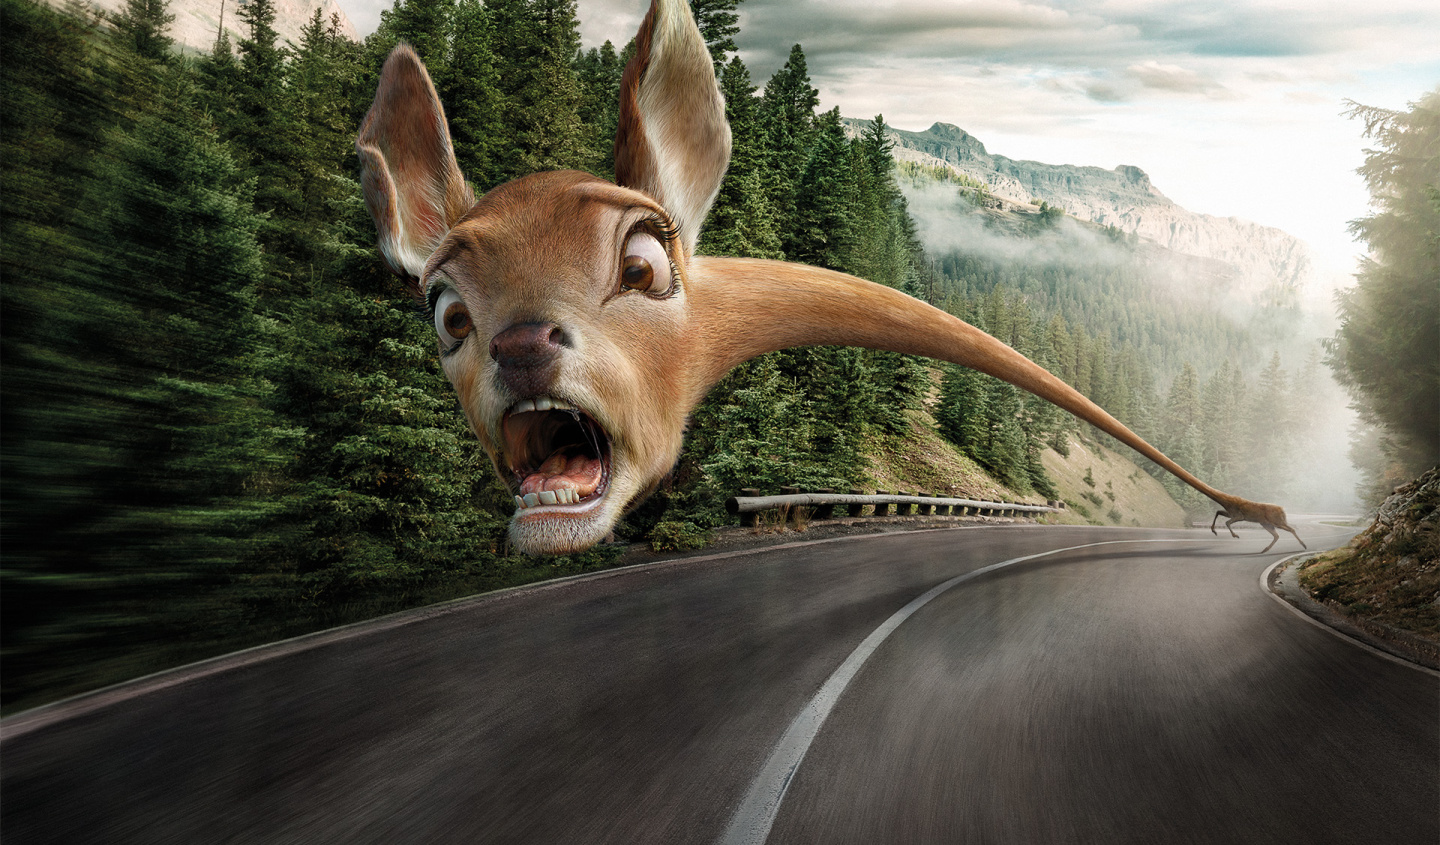 Mercedes-Benz spots danger ahead. These wacky caricatures are our latest production with Illusion and Wirz Zurich.